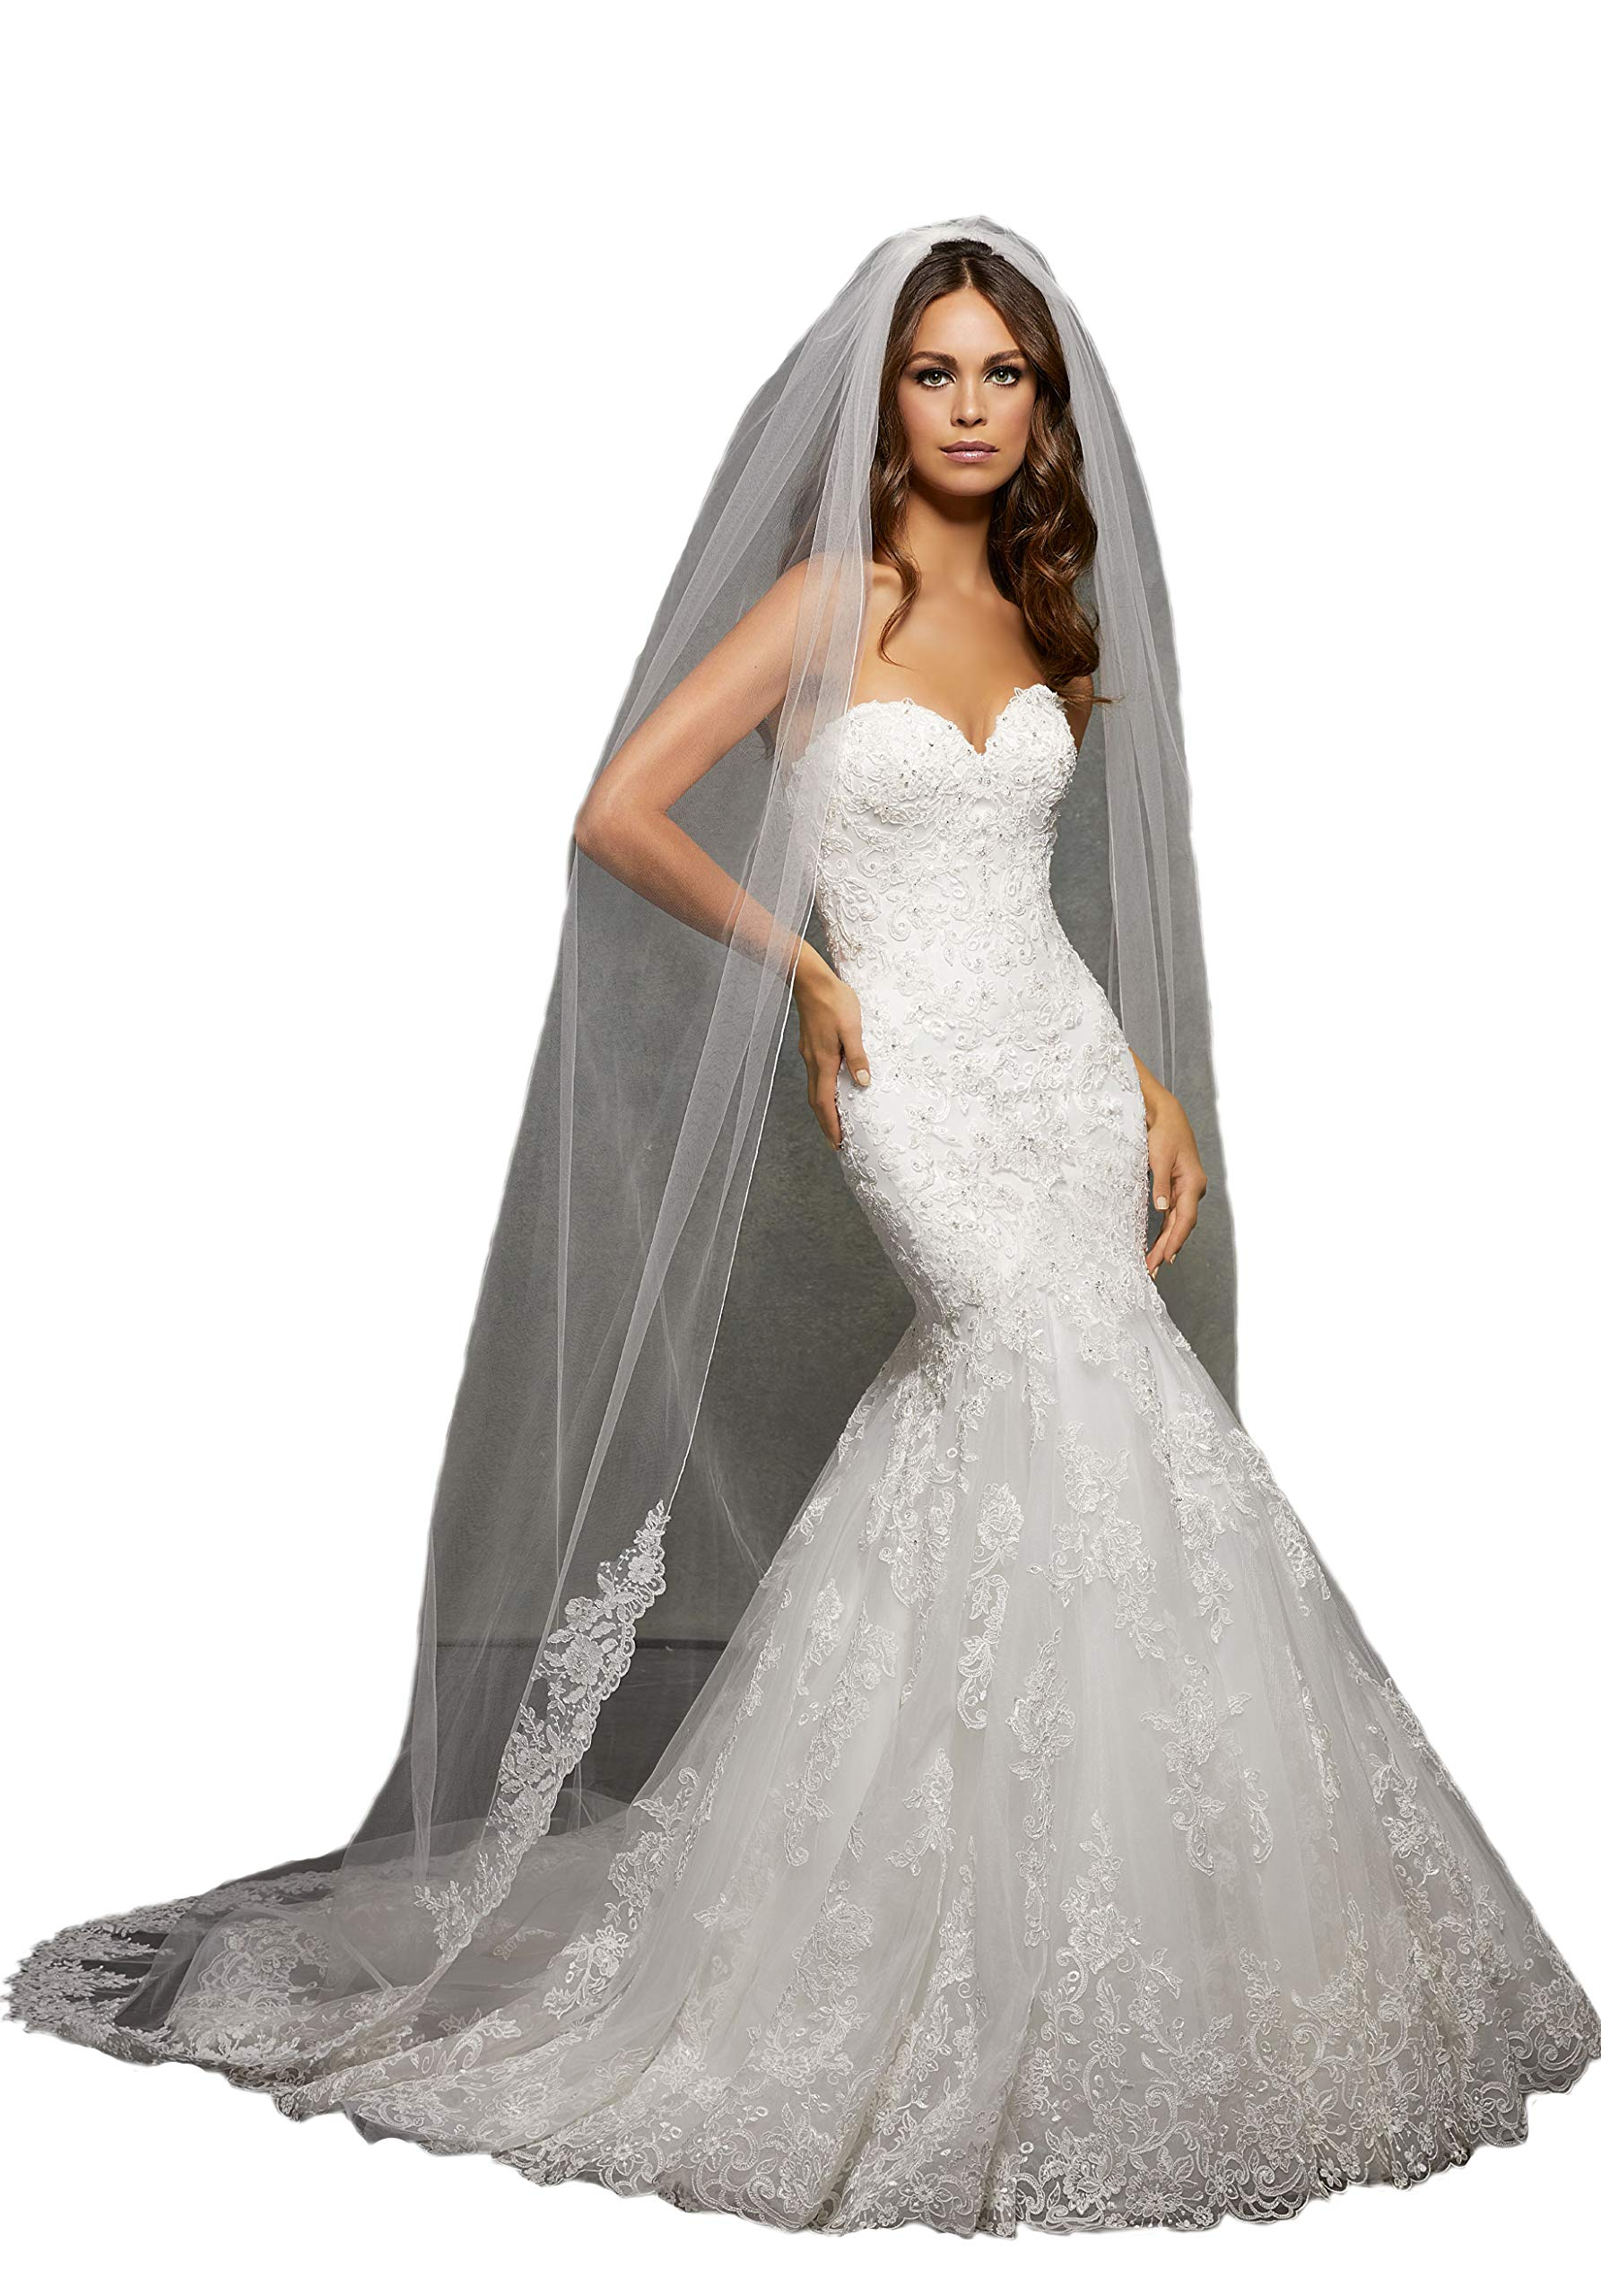 Passat Pale Ivory Single-Tier 3M Cathedral Wedding Bridal Veil Edged with Lace, Beaded with Sequins and Rhinestones VL1057 by Passat